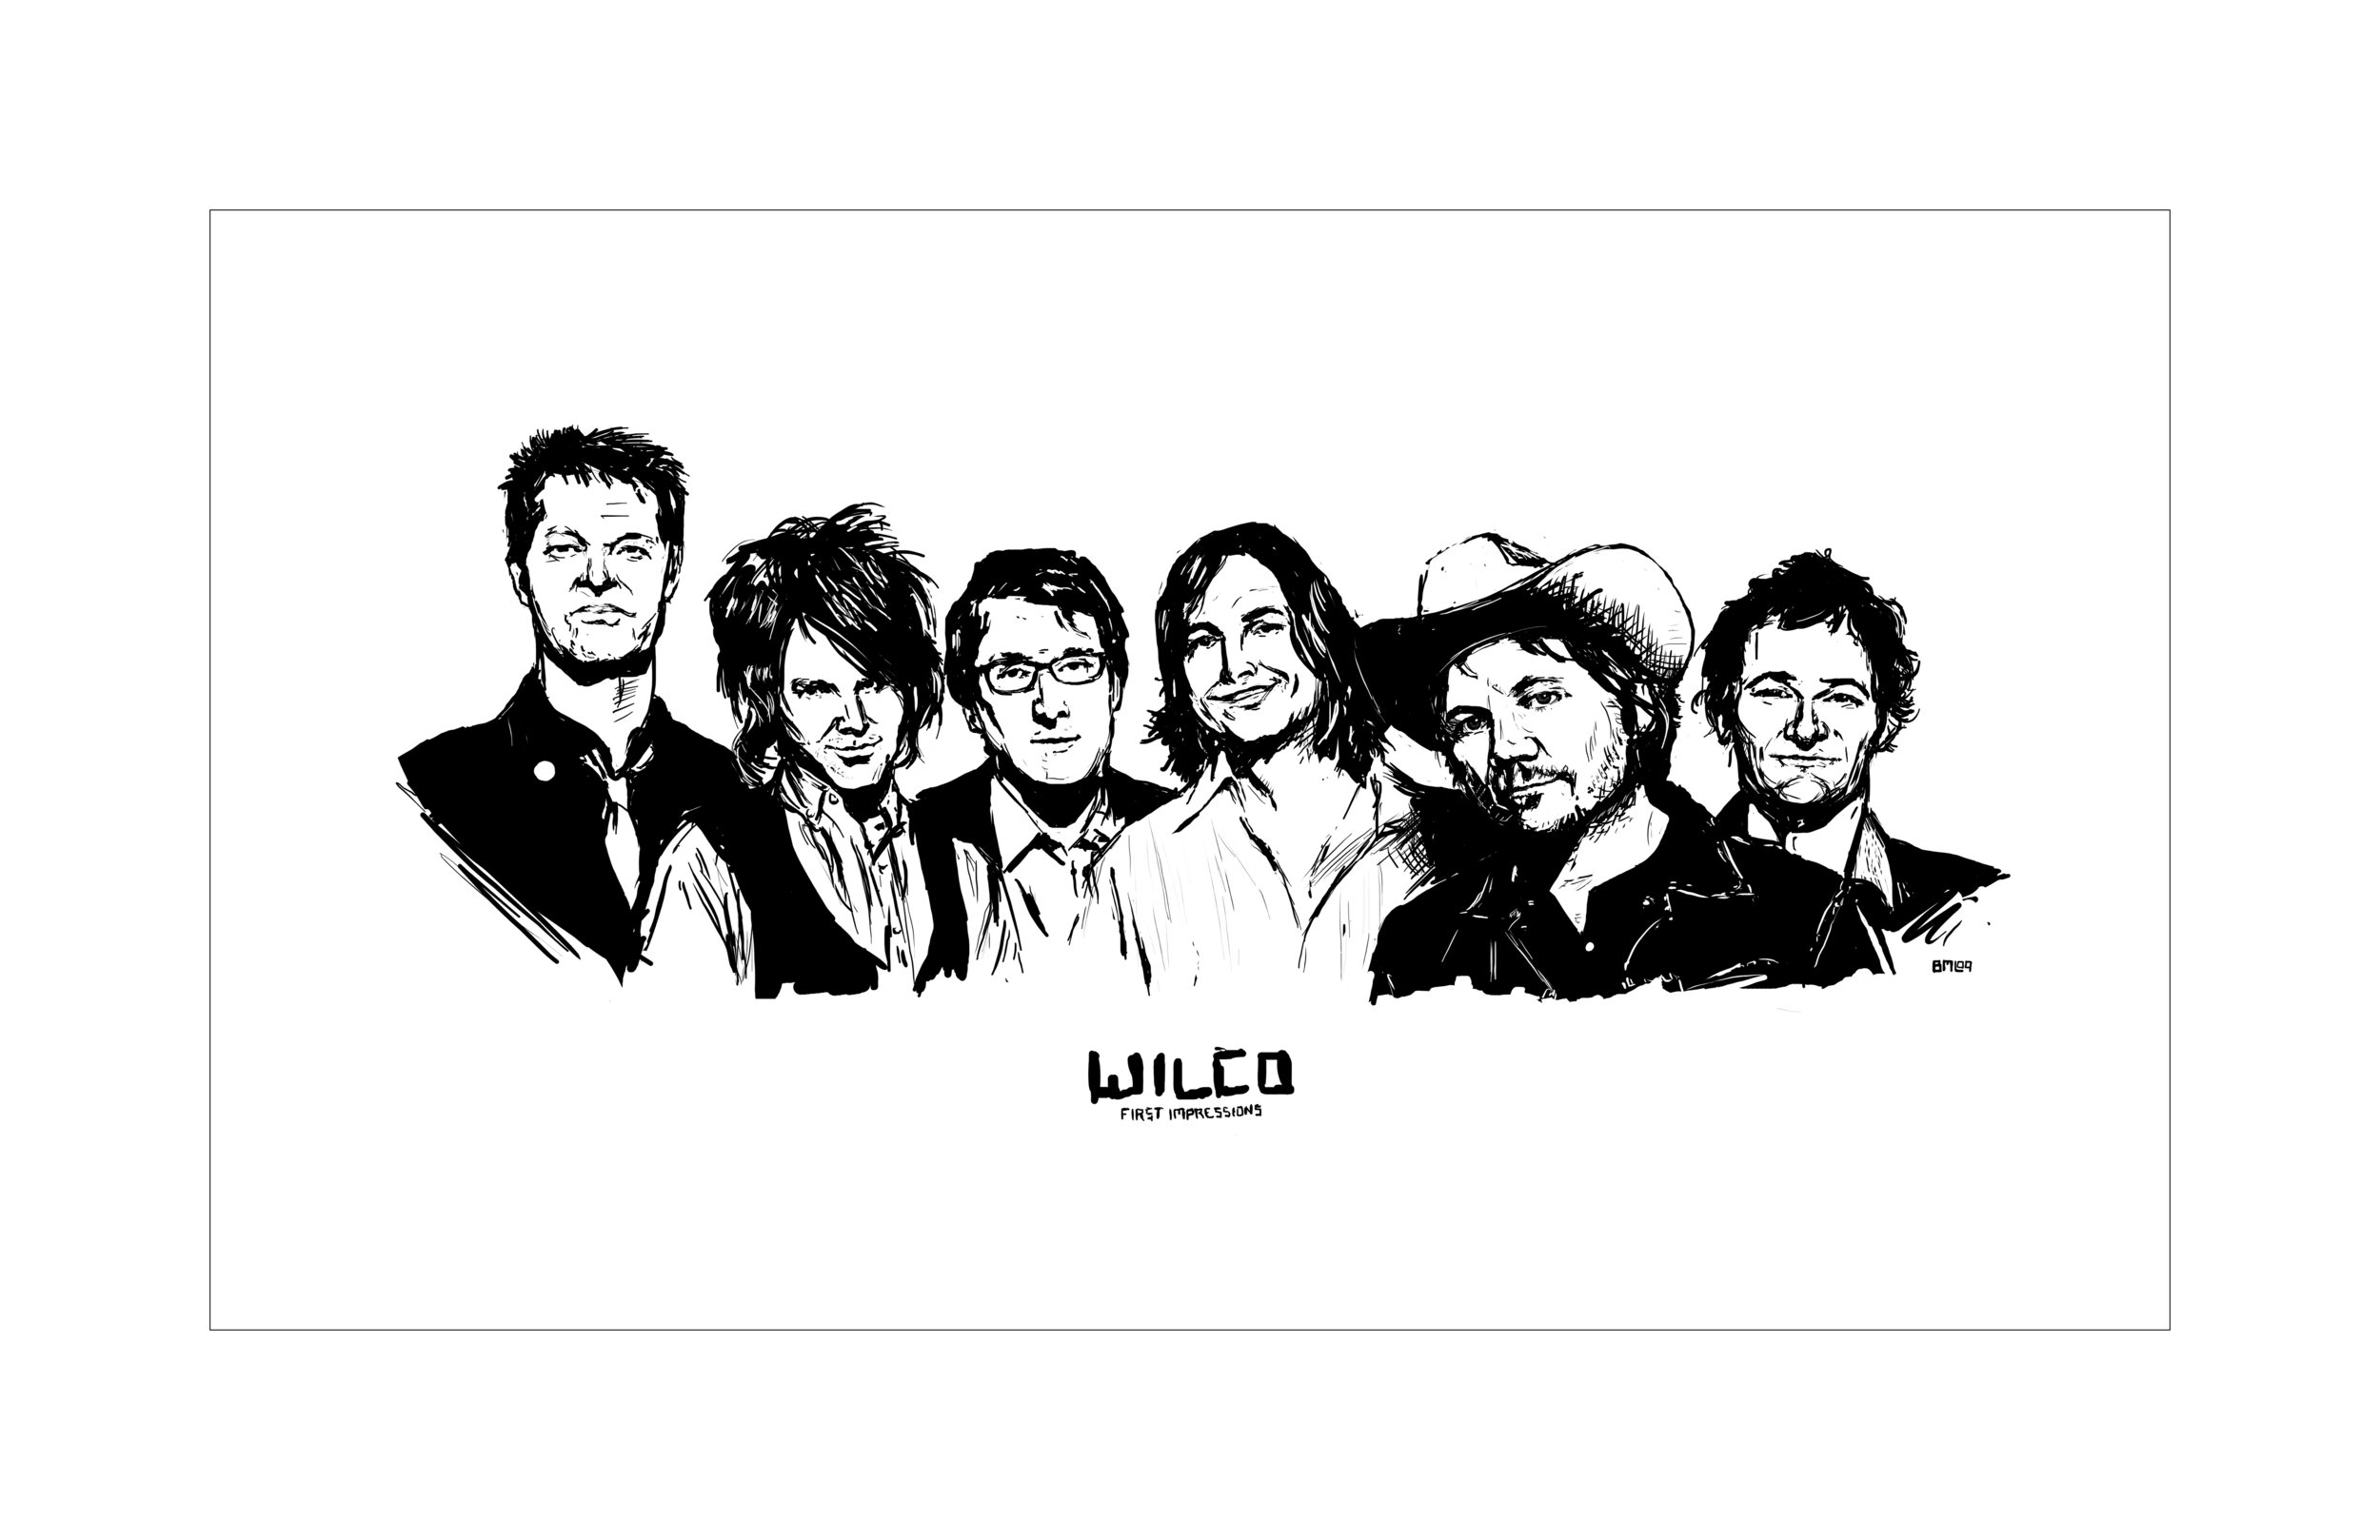 19_Digital-Drawing_Wilco.png